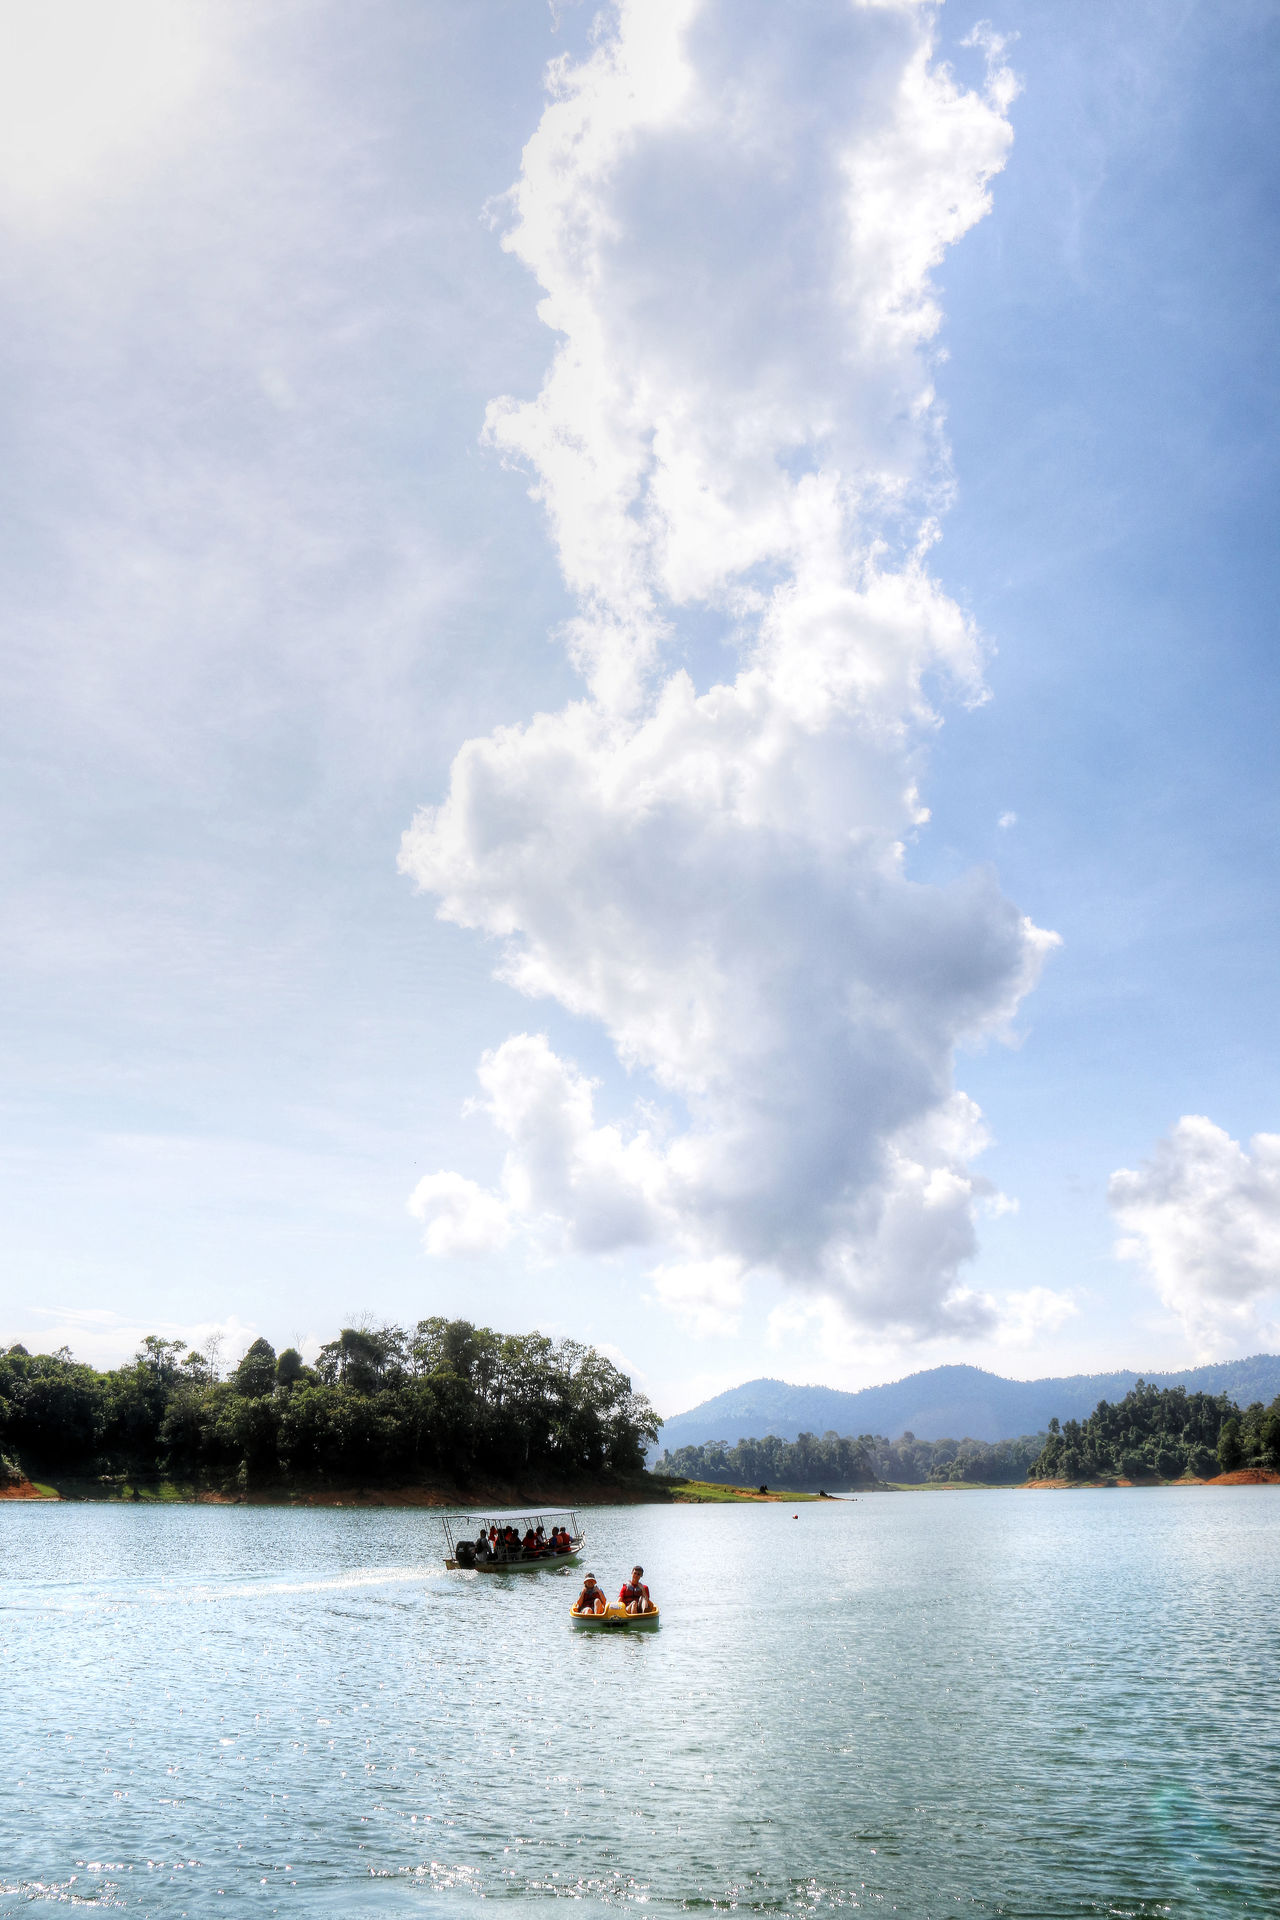 Kenyir Lake is the largest man-made lake in South-East Asia. Covering an area of 260,000 hectares, it is home to some 300 species of freshwater fishes Beauty In Nature Clouds Day Kenyir Kenyir Lake Malaysia Nature Nature Outdoors Resort Sky Terengganu Tourist Destination Tranquility Water